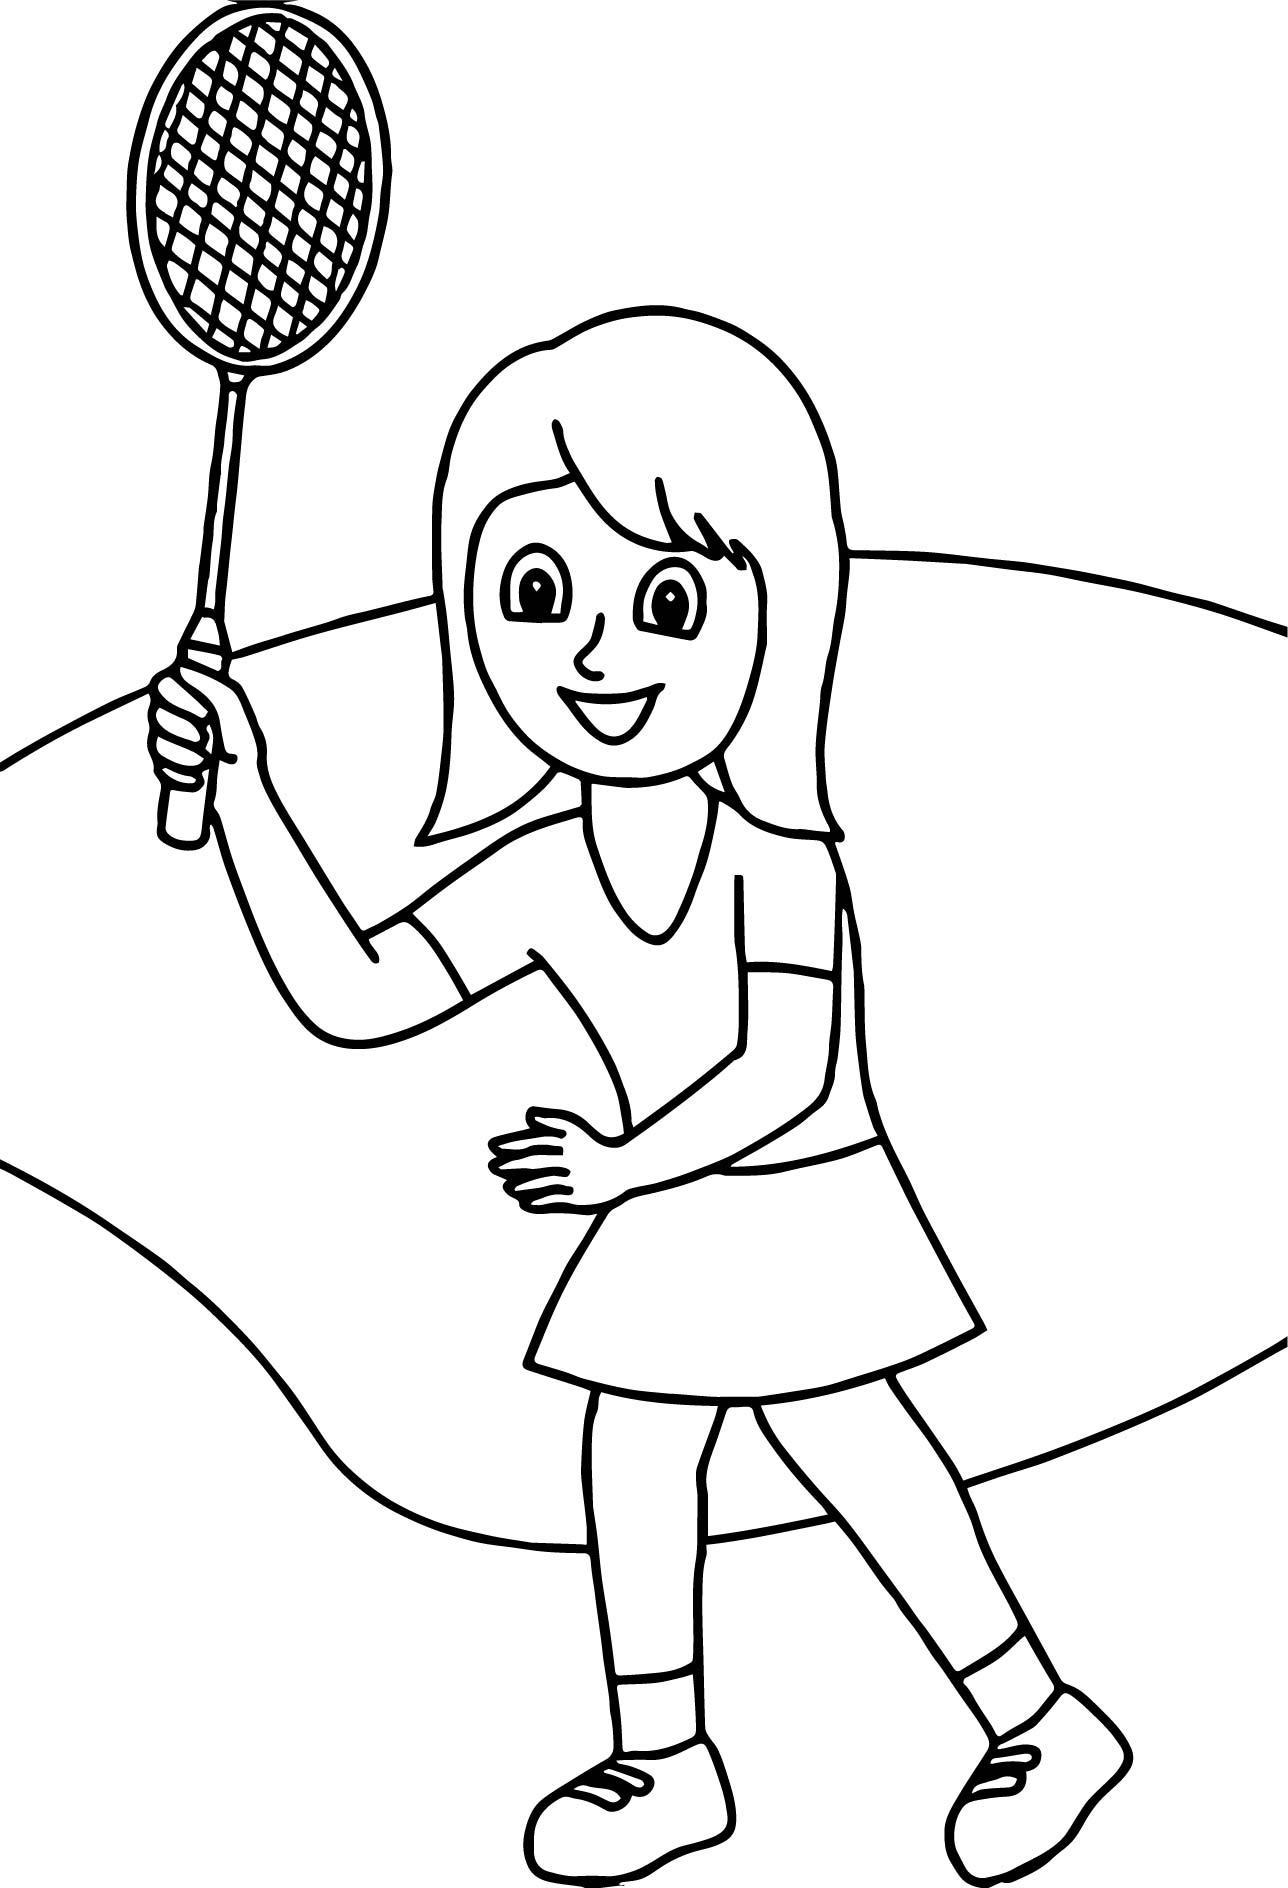 with badminton racquet coloring page wecoloringpage